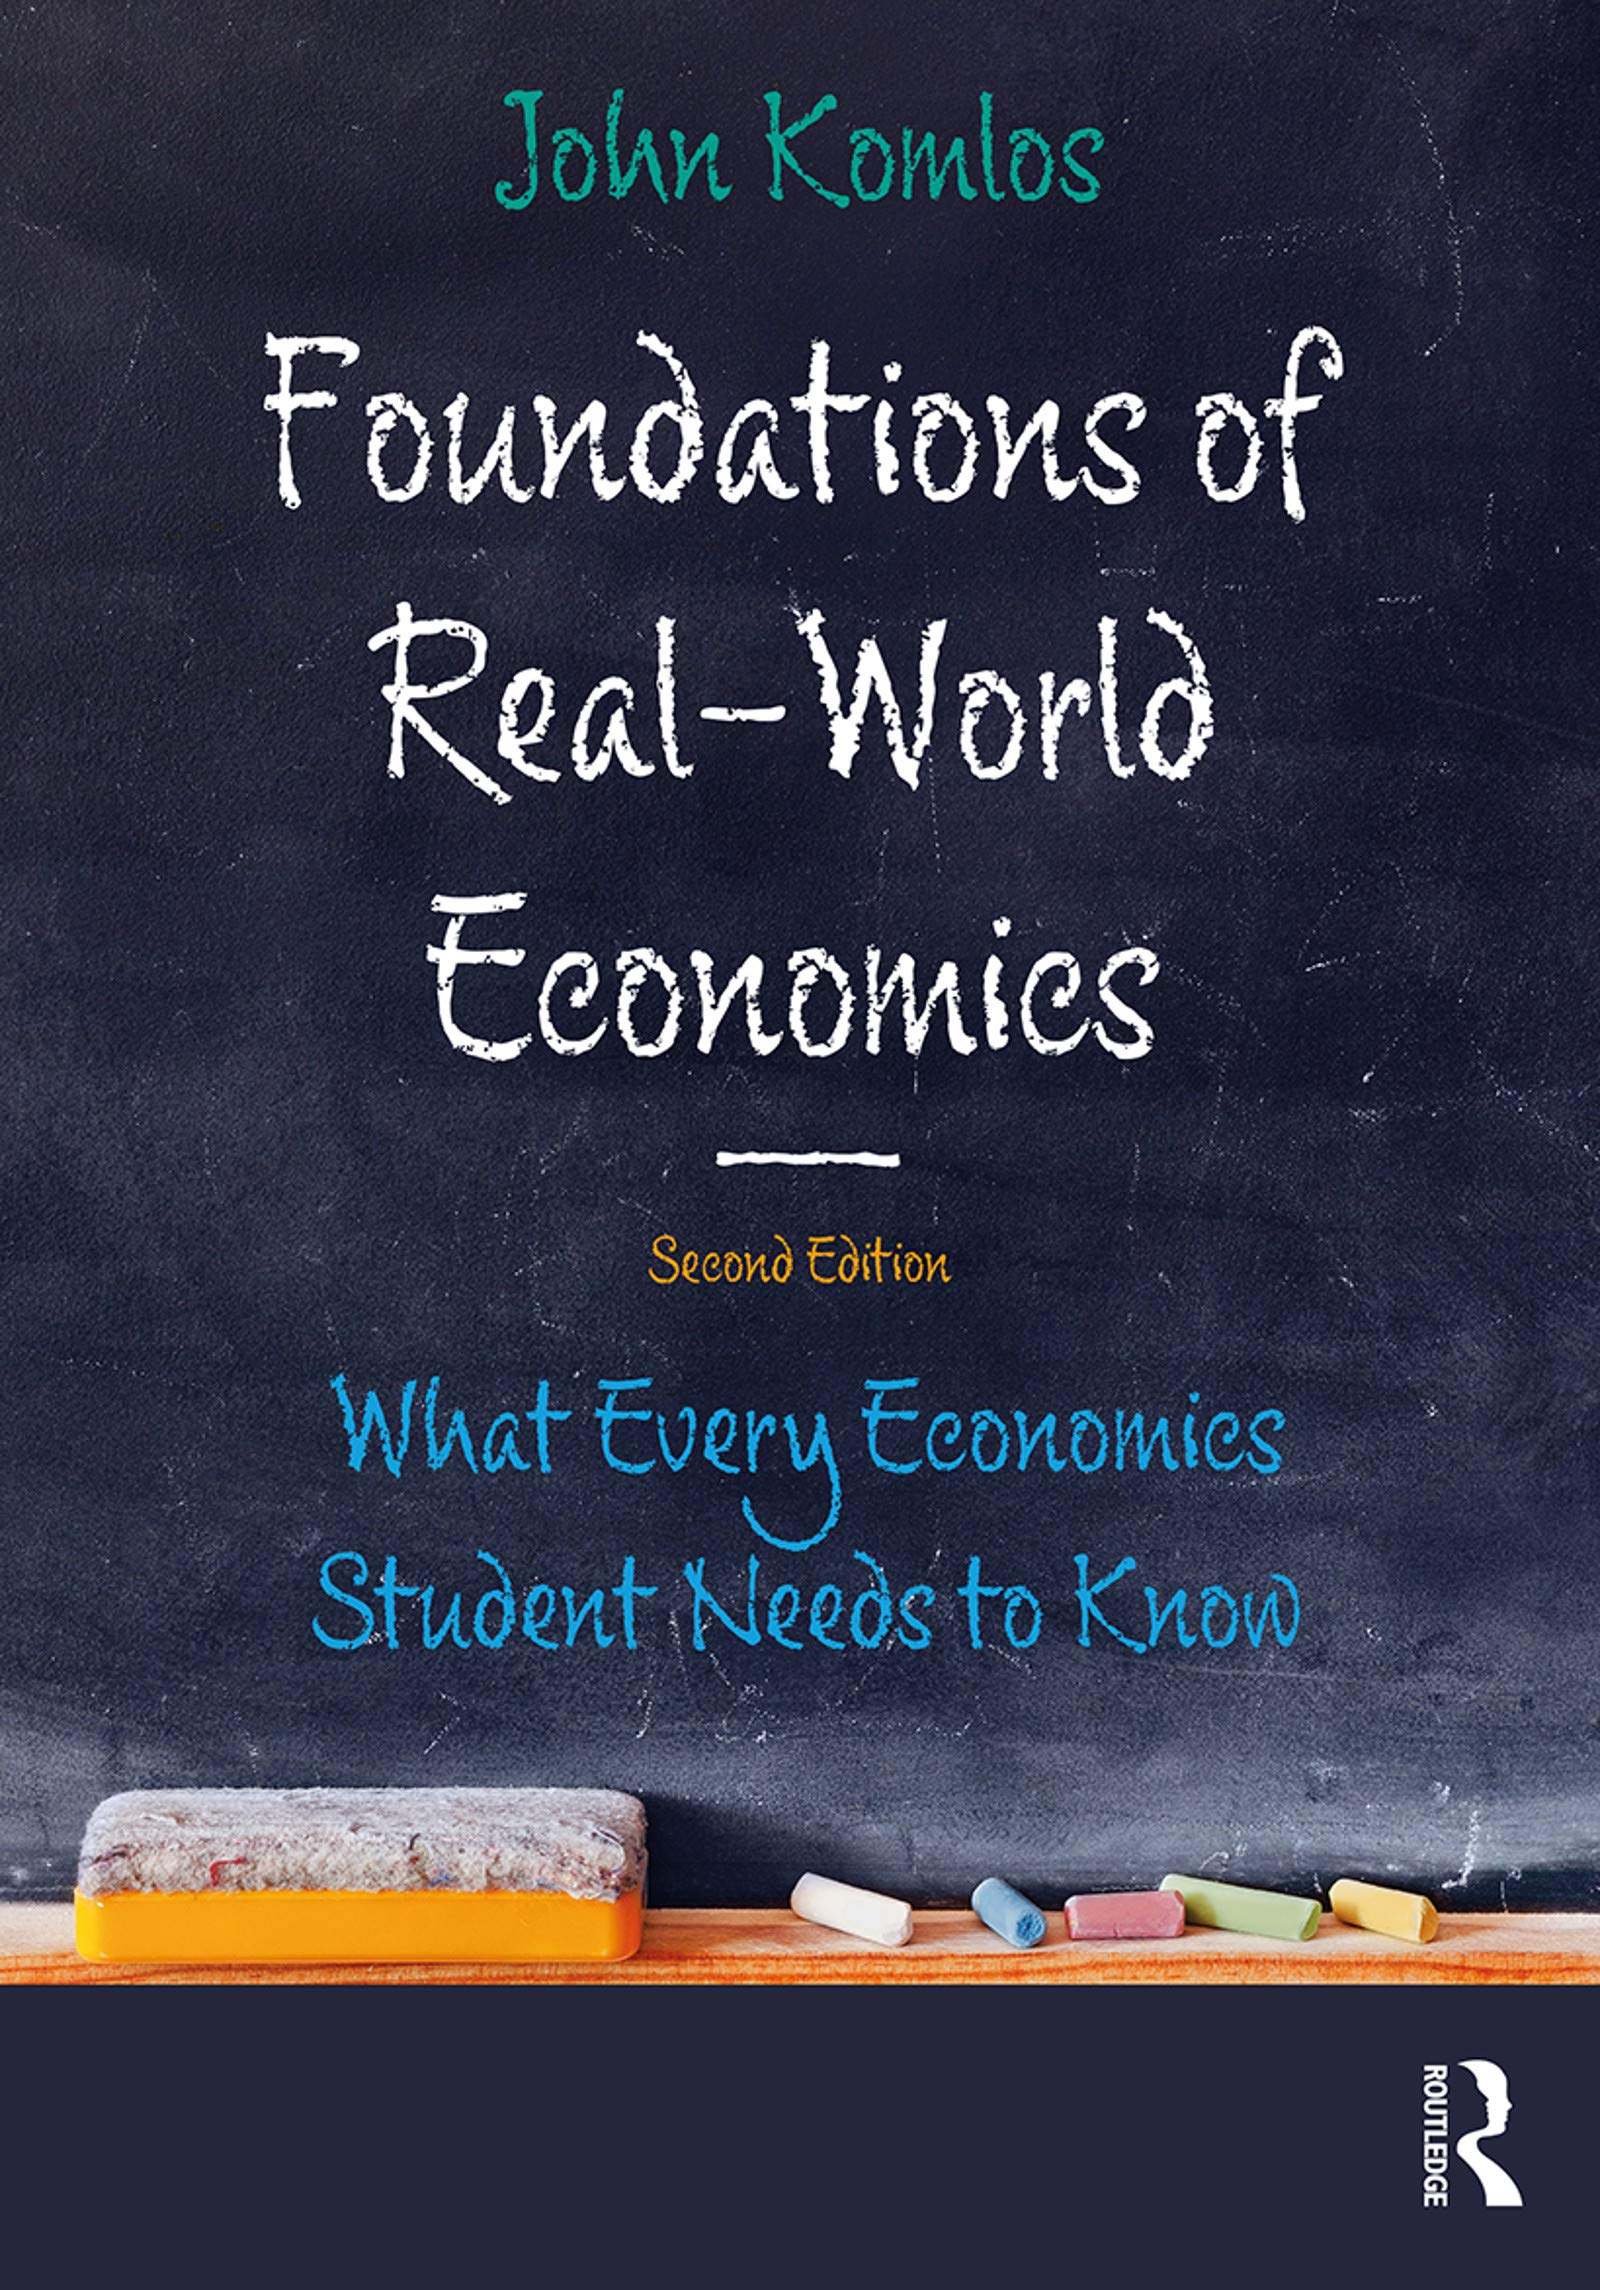 Foundations of Real-World Economics: What Every Economics Student Needs to Know